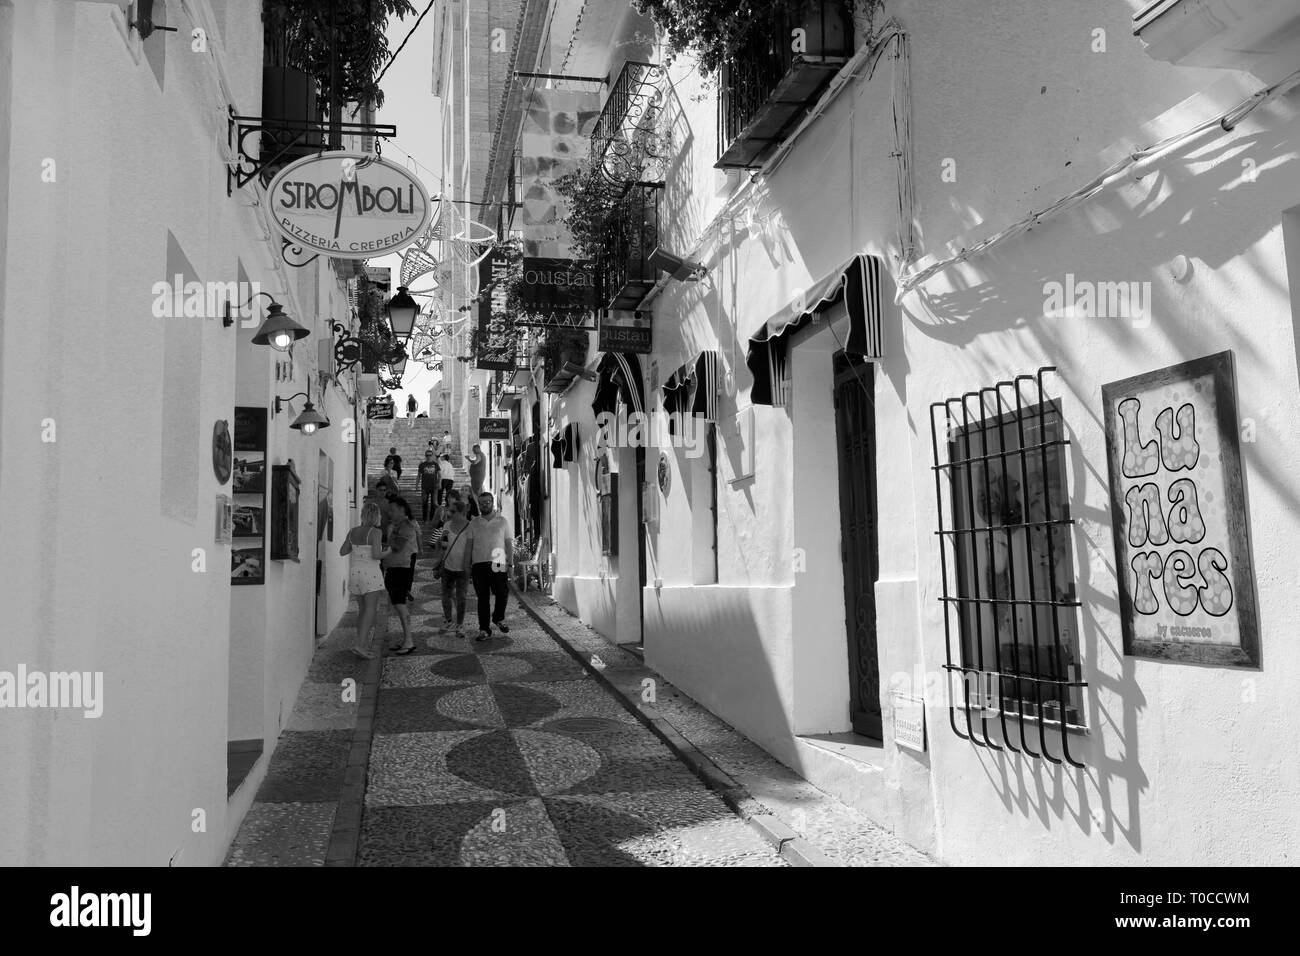 View of the streets in the old town of Altea, Costa Blanca, Spain, Europe Stock Photo